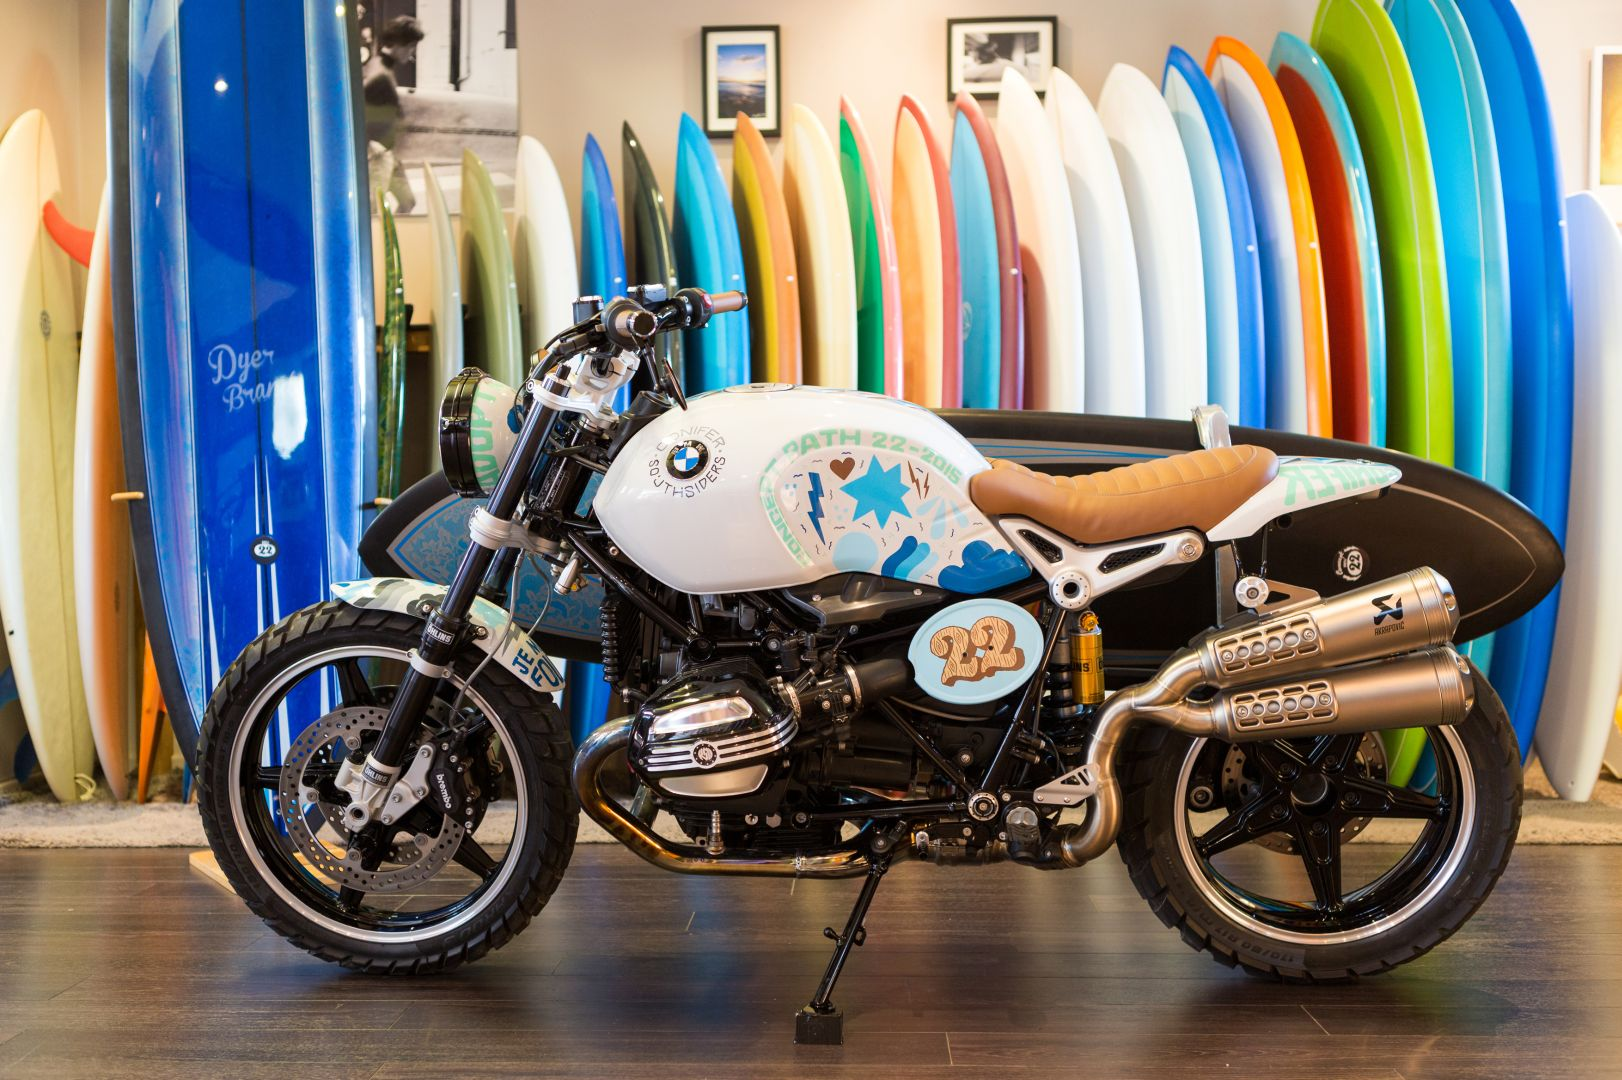 Atlantic Auto Sales >> BMW Concept Path 22 Is a Surf-Ready R nineT - autoevolution